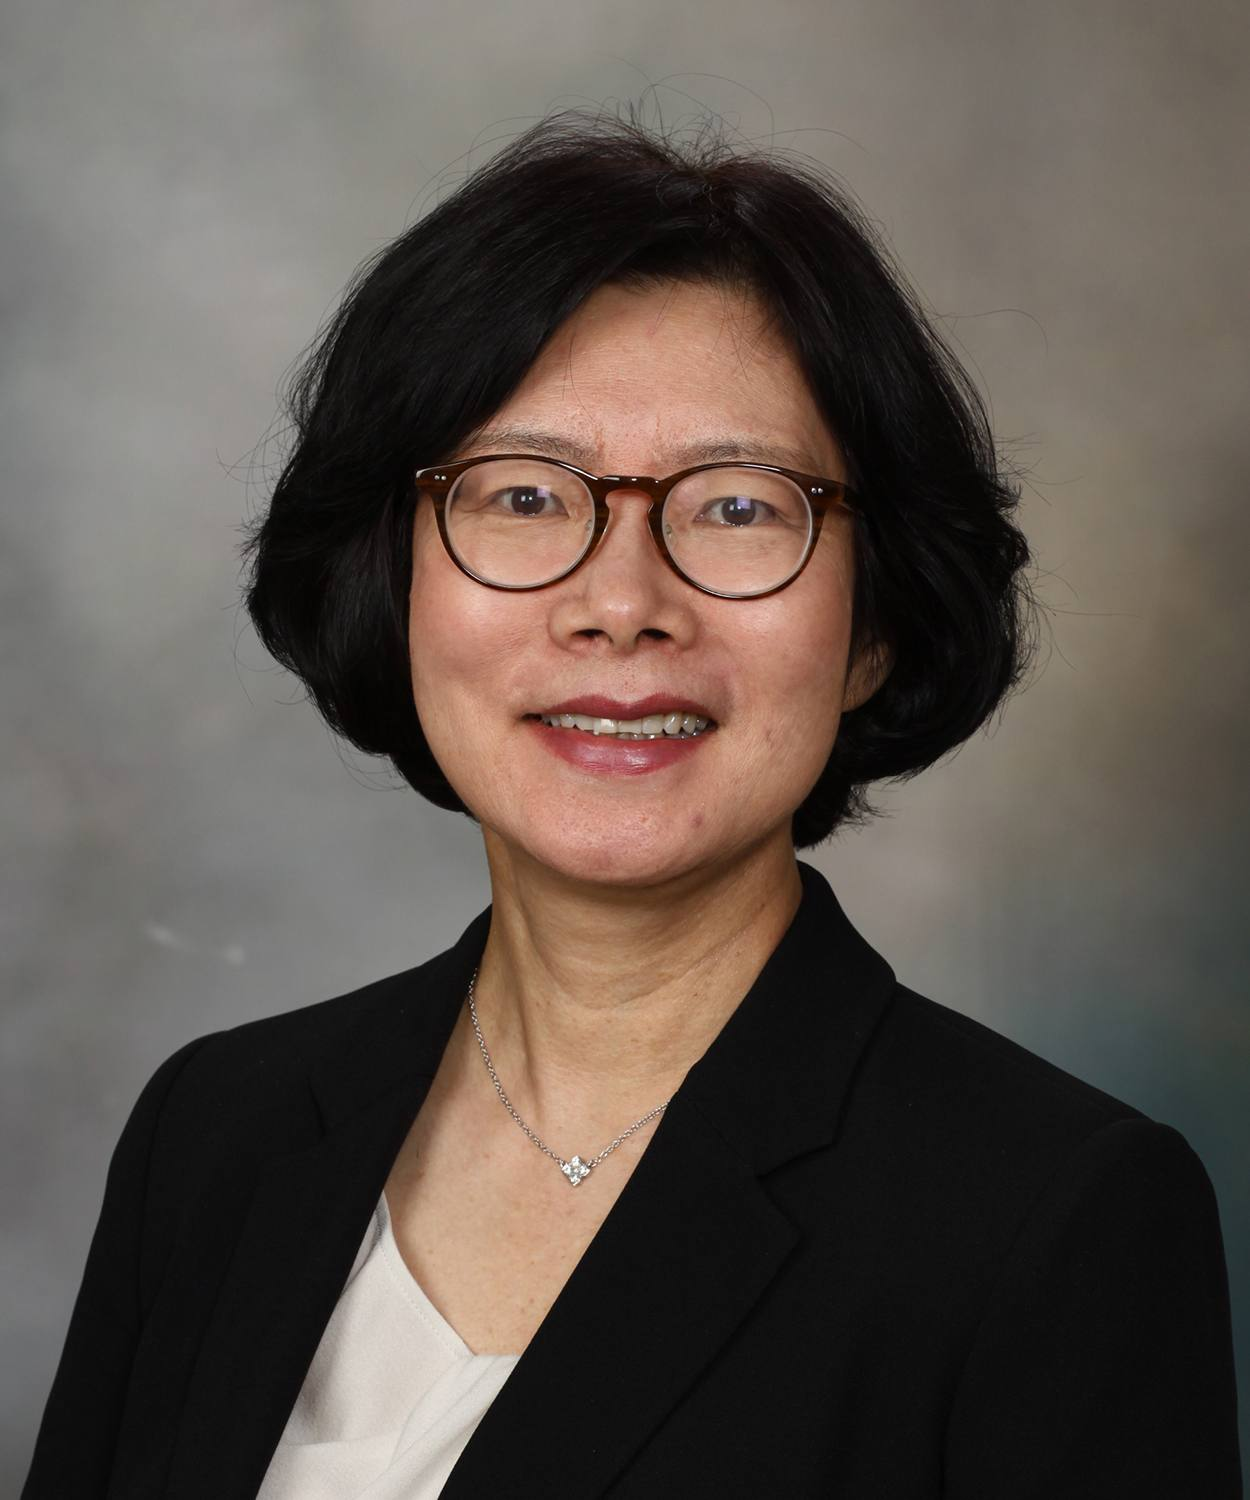 Photo of Joanne (Eunhee) E. Yi, M.D.